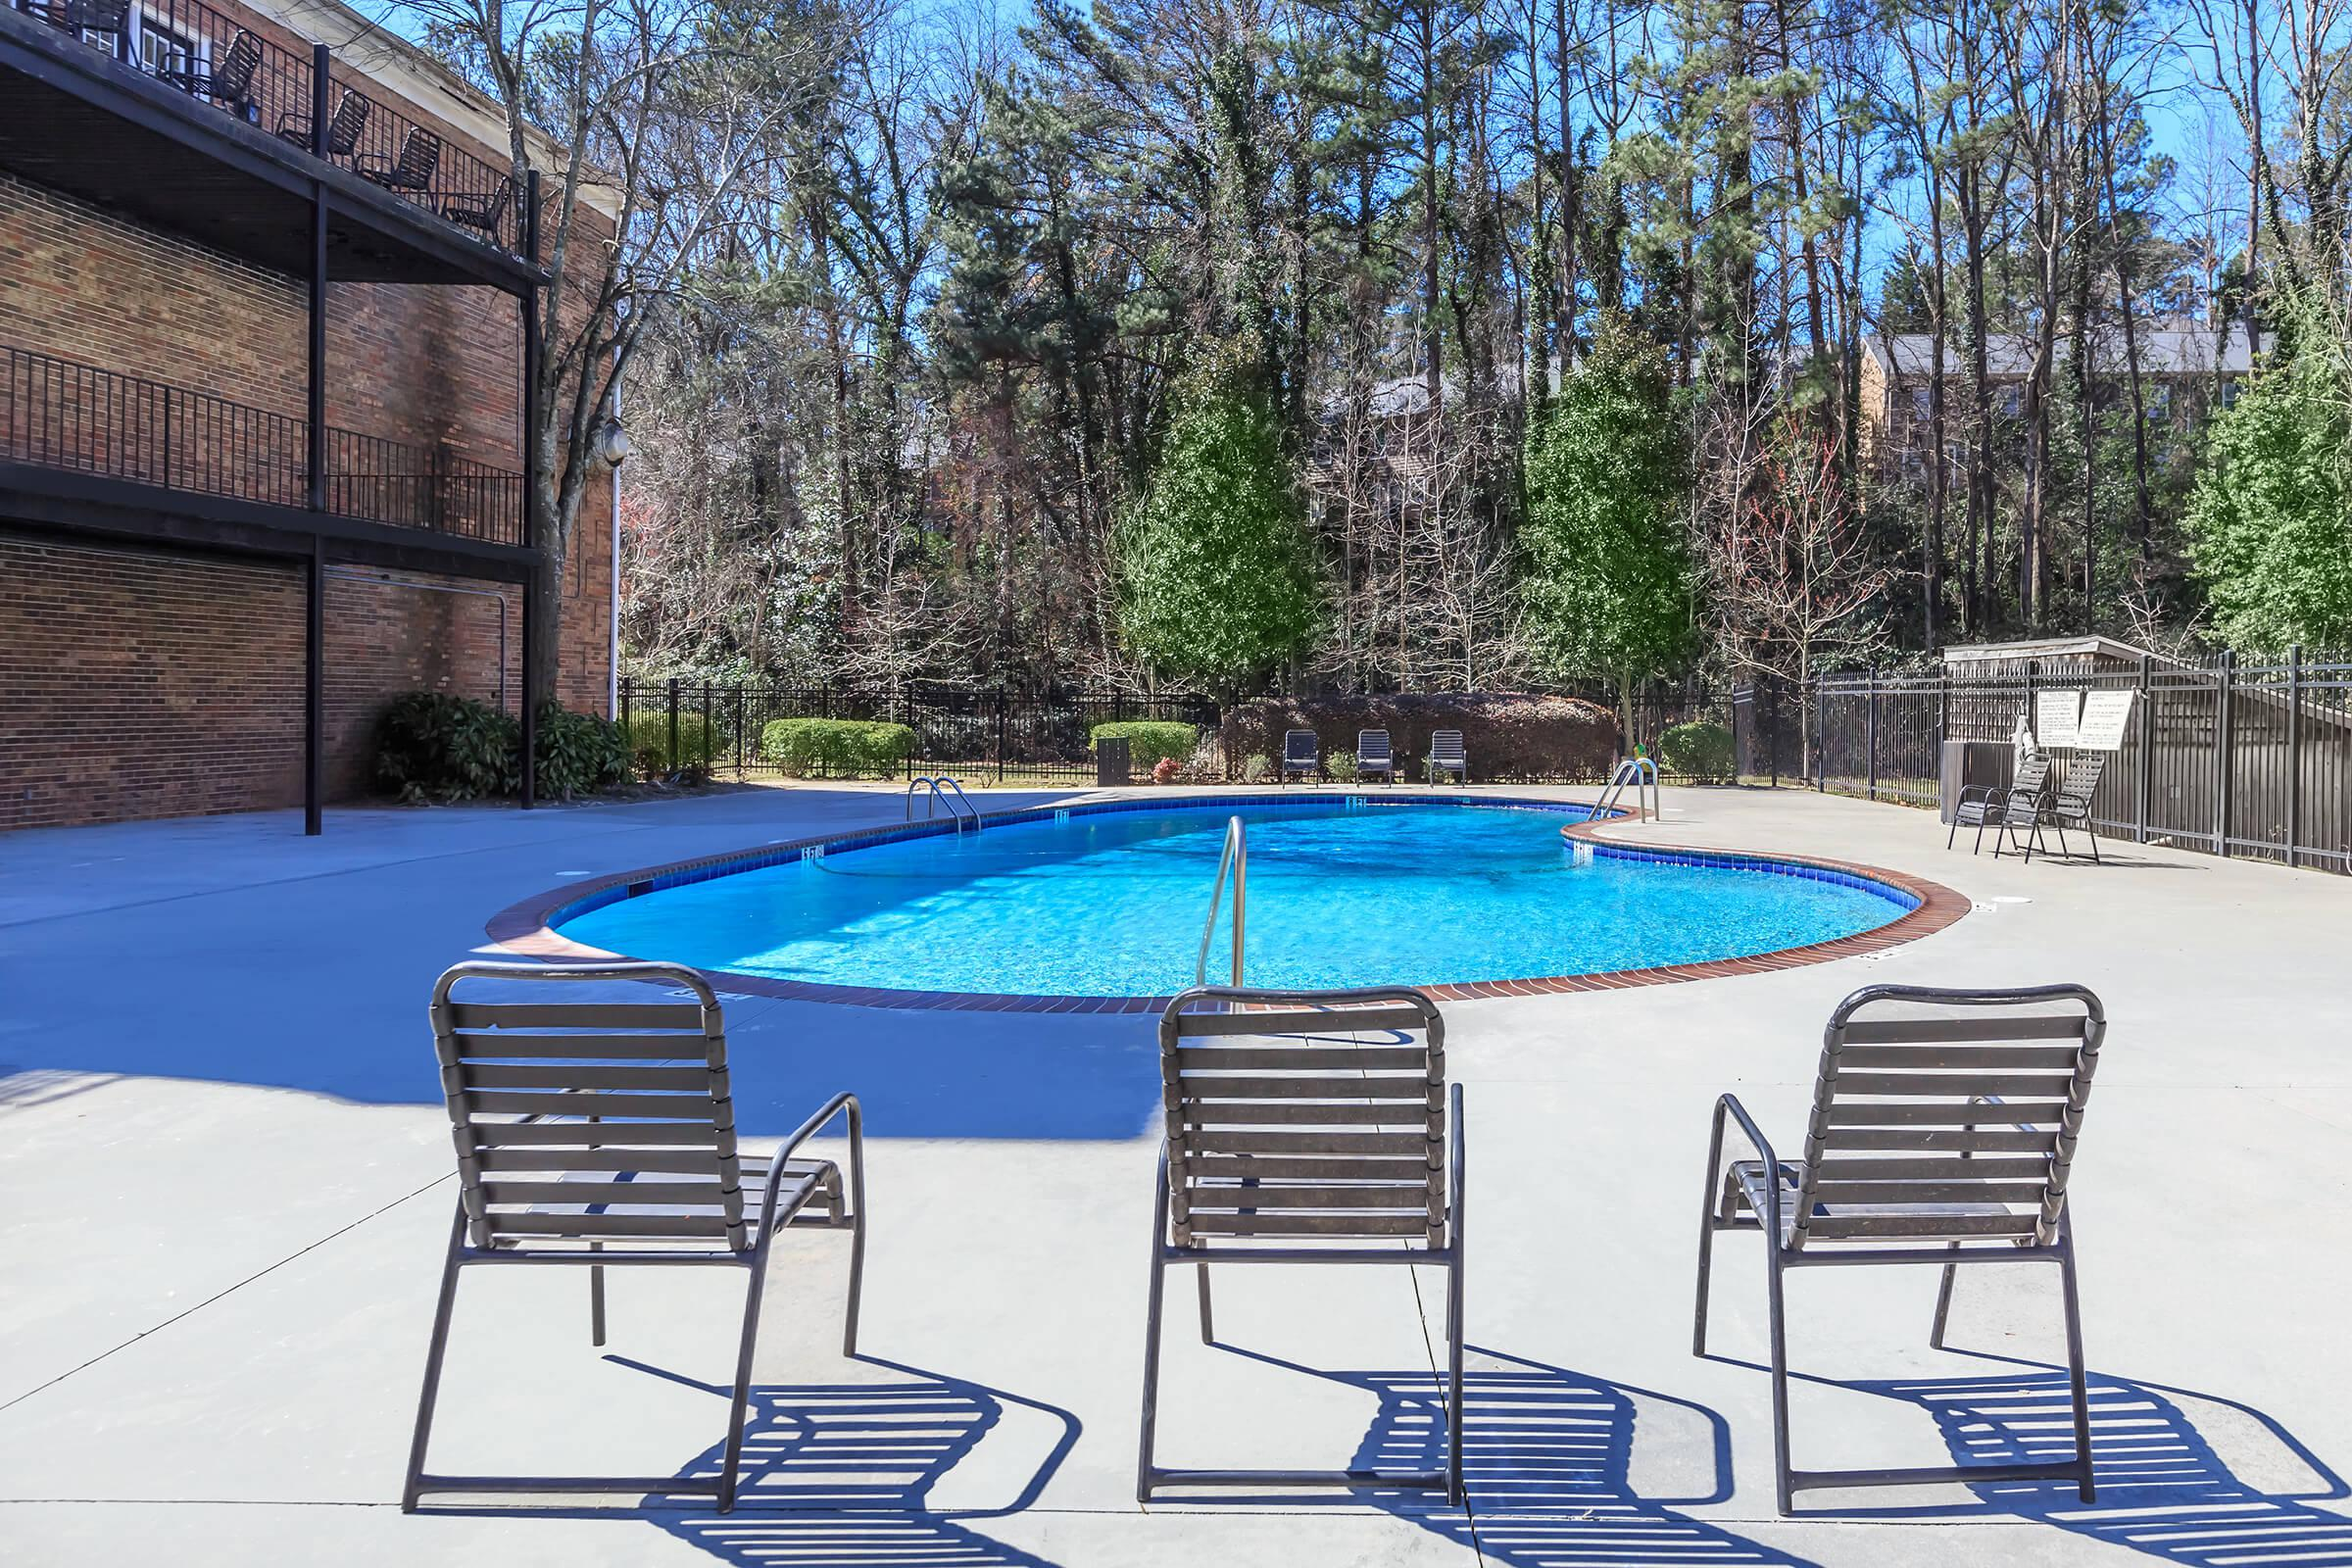 a row of lawn chairs sitting on top of a bench in a pool